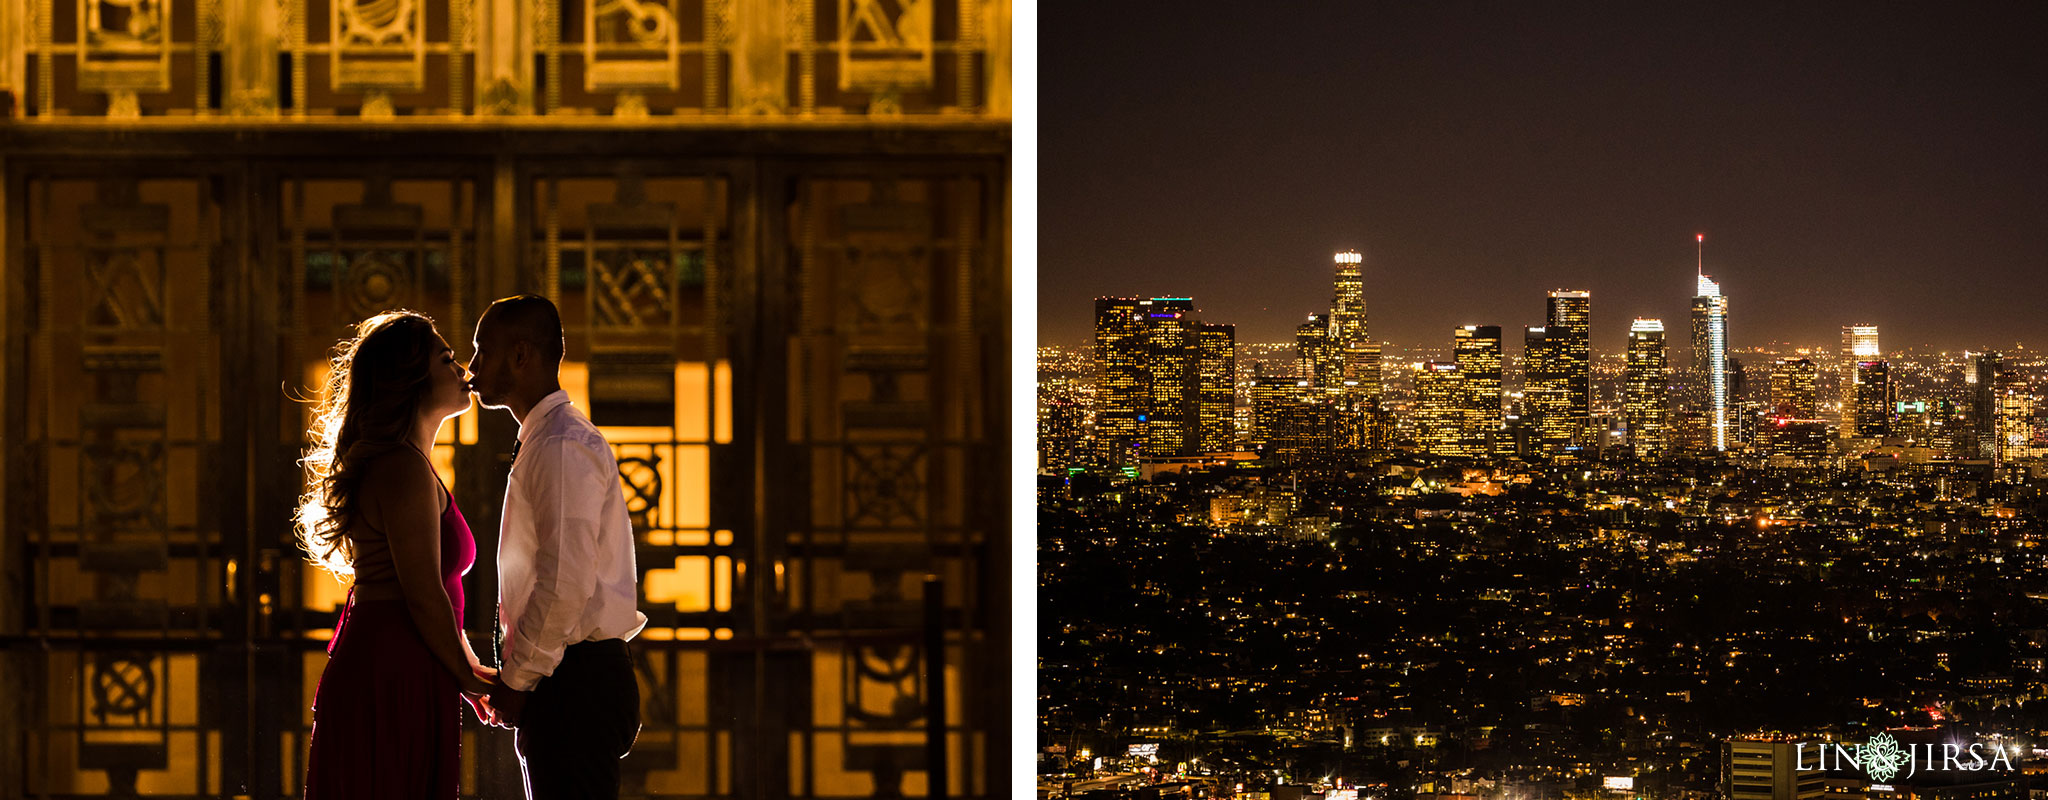 09 griffith observatory los angeles engagement photography